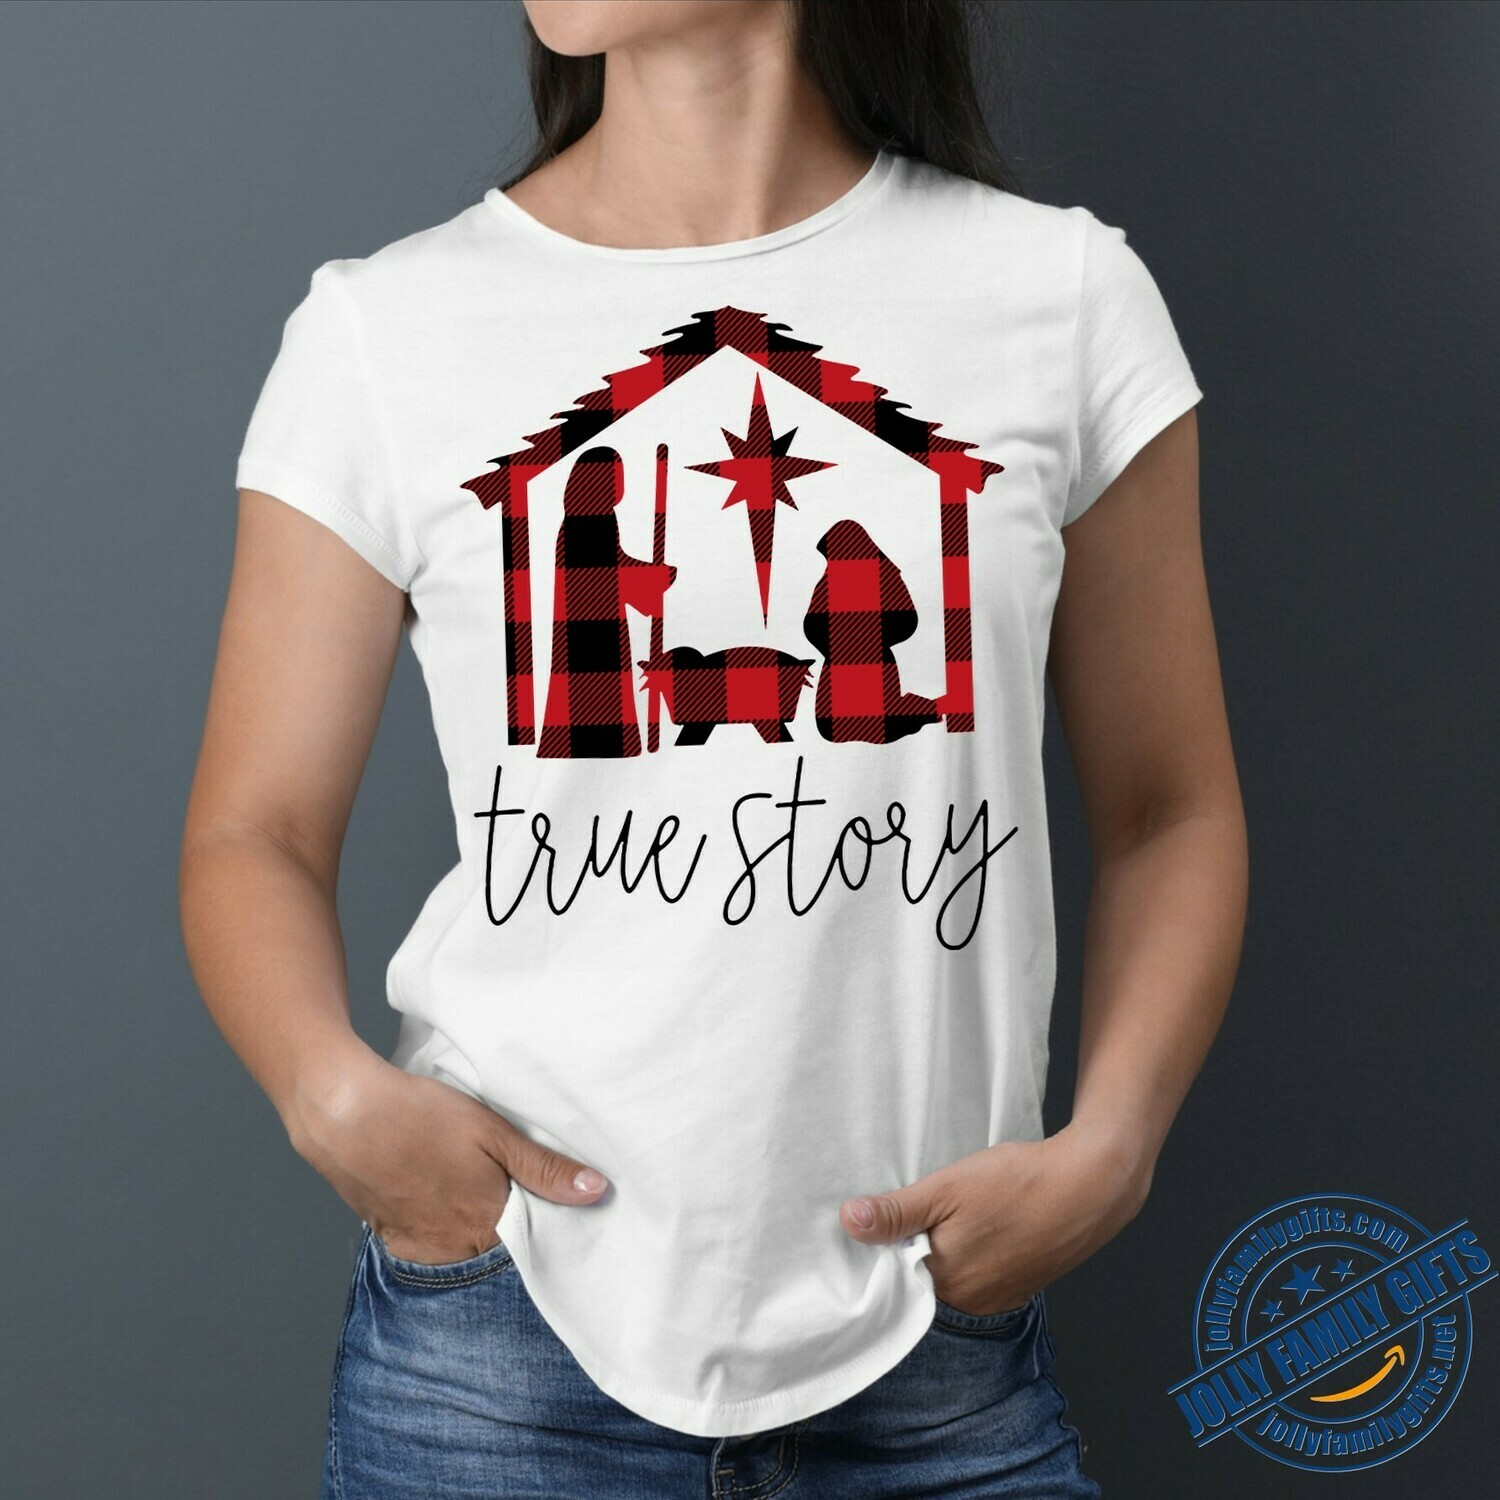 True Story Jesus Birth Buffalo Plaid Celebrate Jesus Birth Christian  Unisex T-Shirt Hoodie Sweatshirt Sweater Plus Size for Ladies Women Men Kids Youth Gifts Tee Jolly Family Gifts